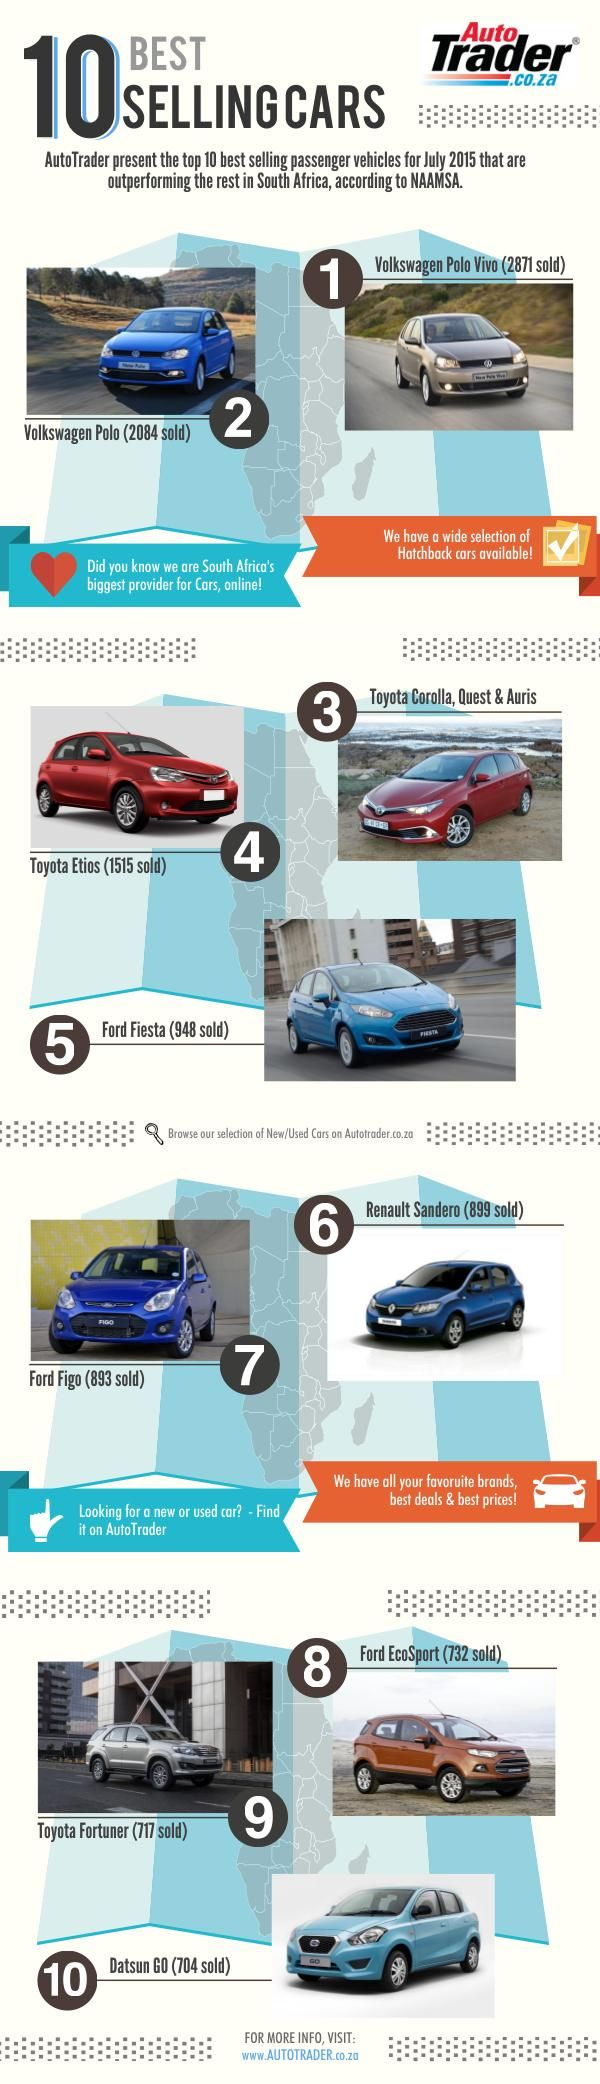 Auto Trader South Africa\'s top 10 selling cars for July 2015: www ...